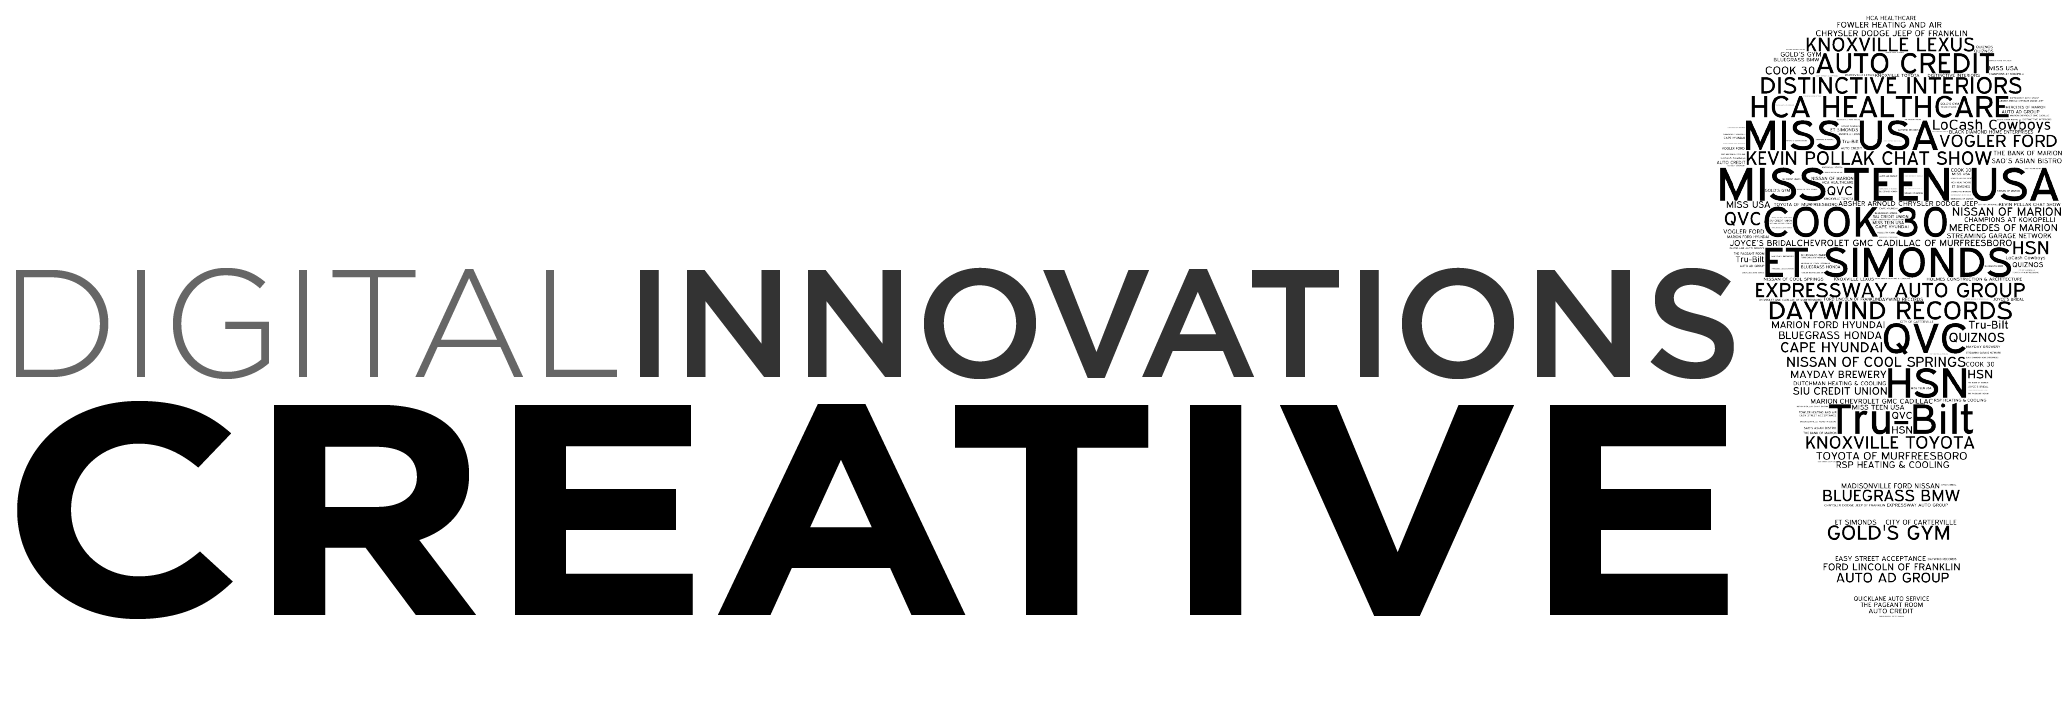 Digital Innovations Creative